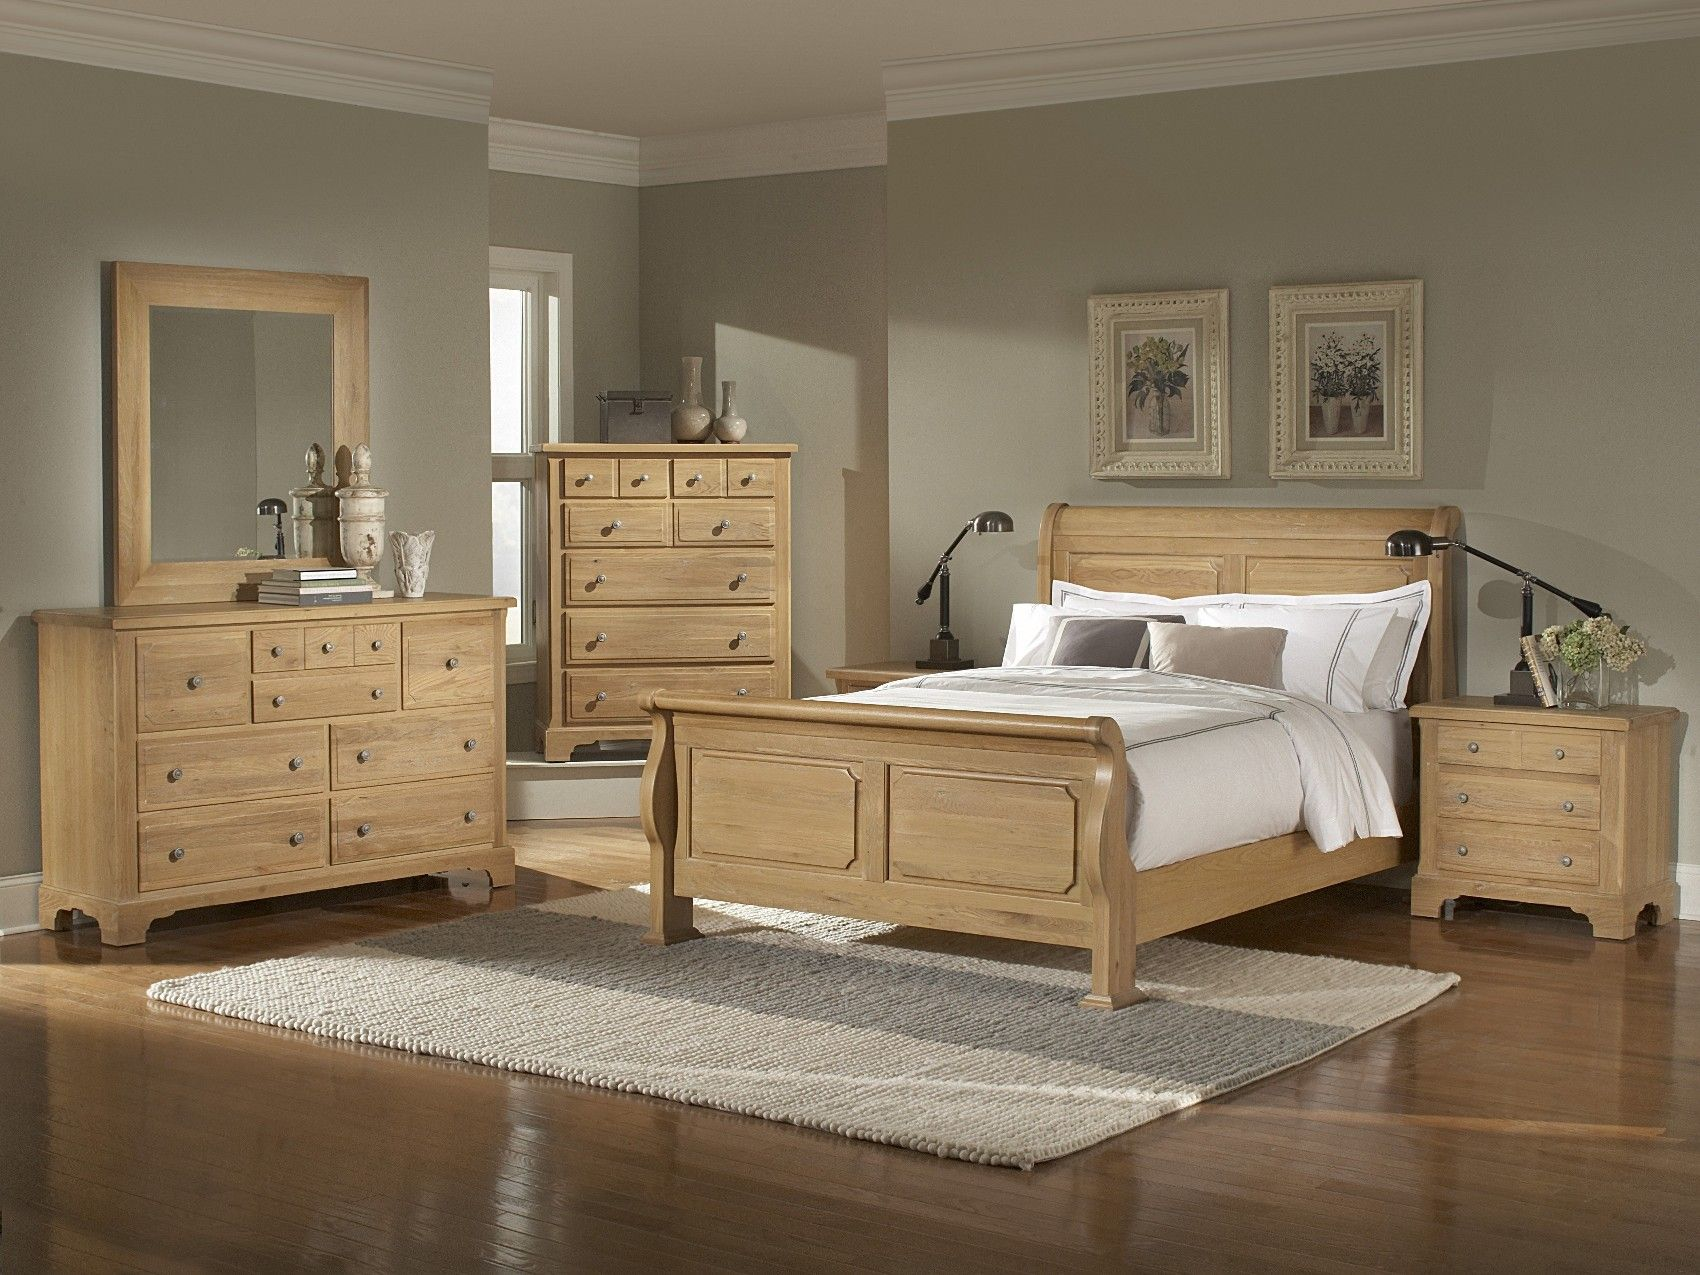 oak bedroom furniture sets washed oak queen sleigh bedroom group a at nc furniture best buys - Oak Bedroom Sets